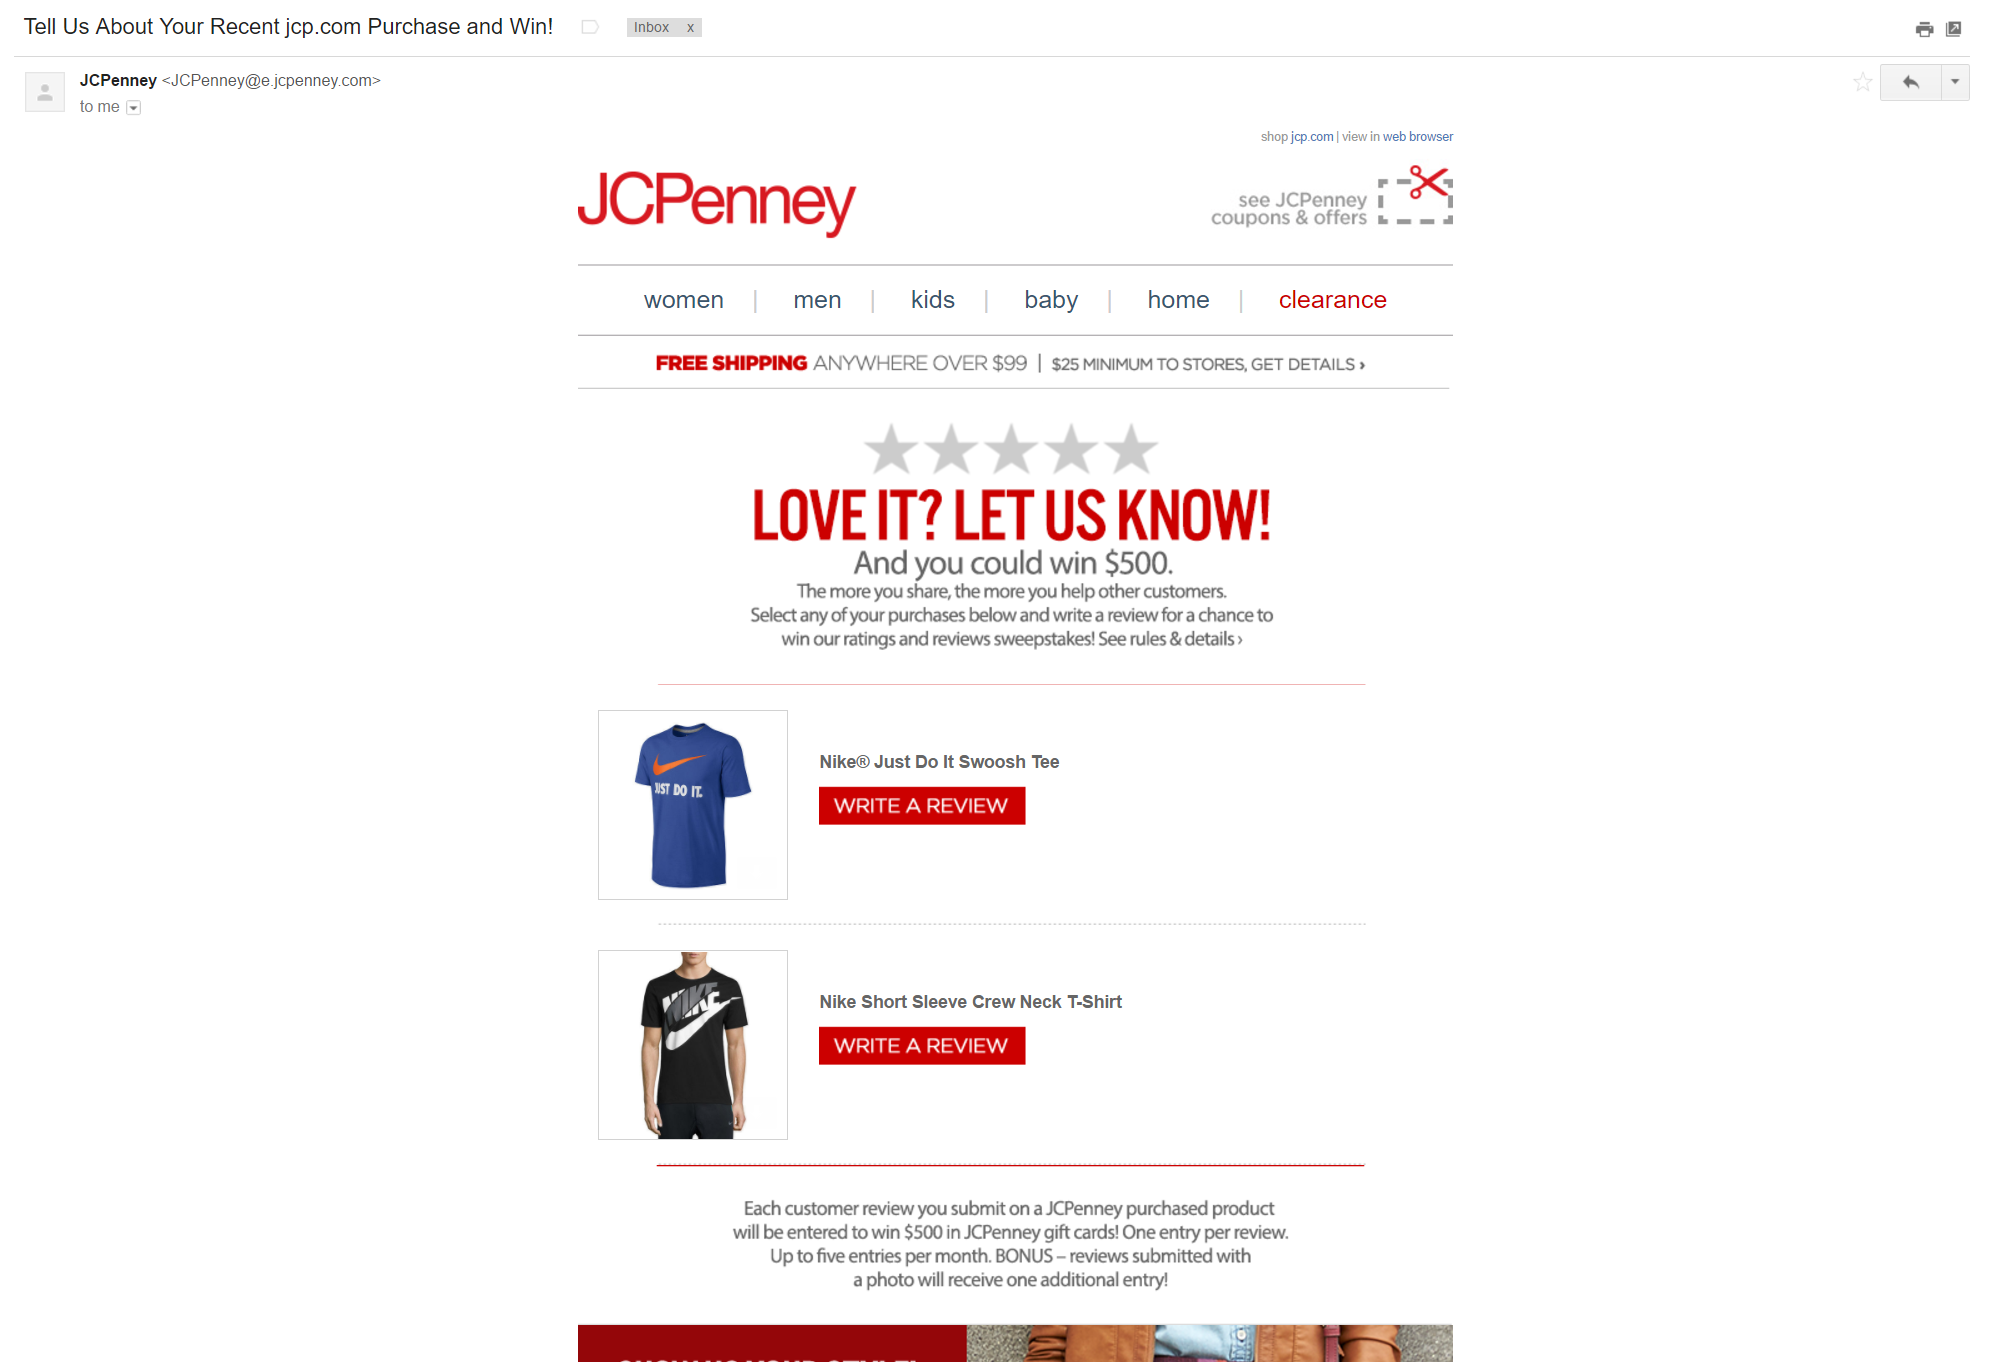 JCPenney review incentive